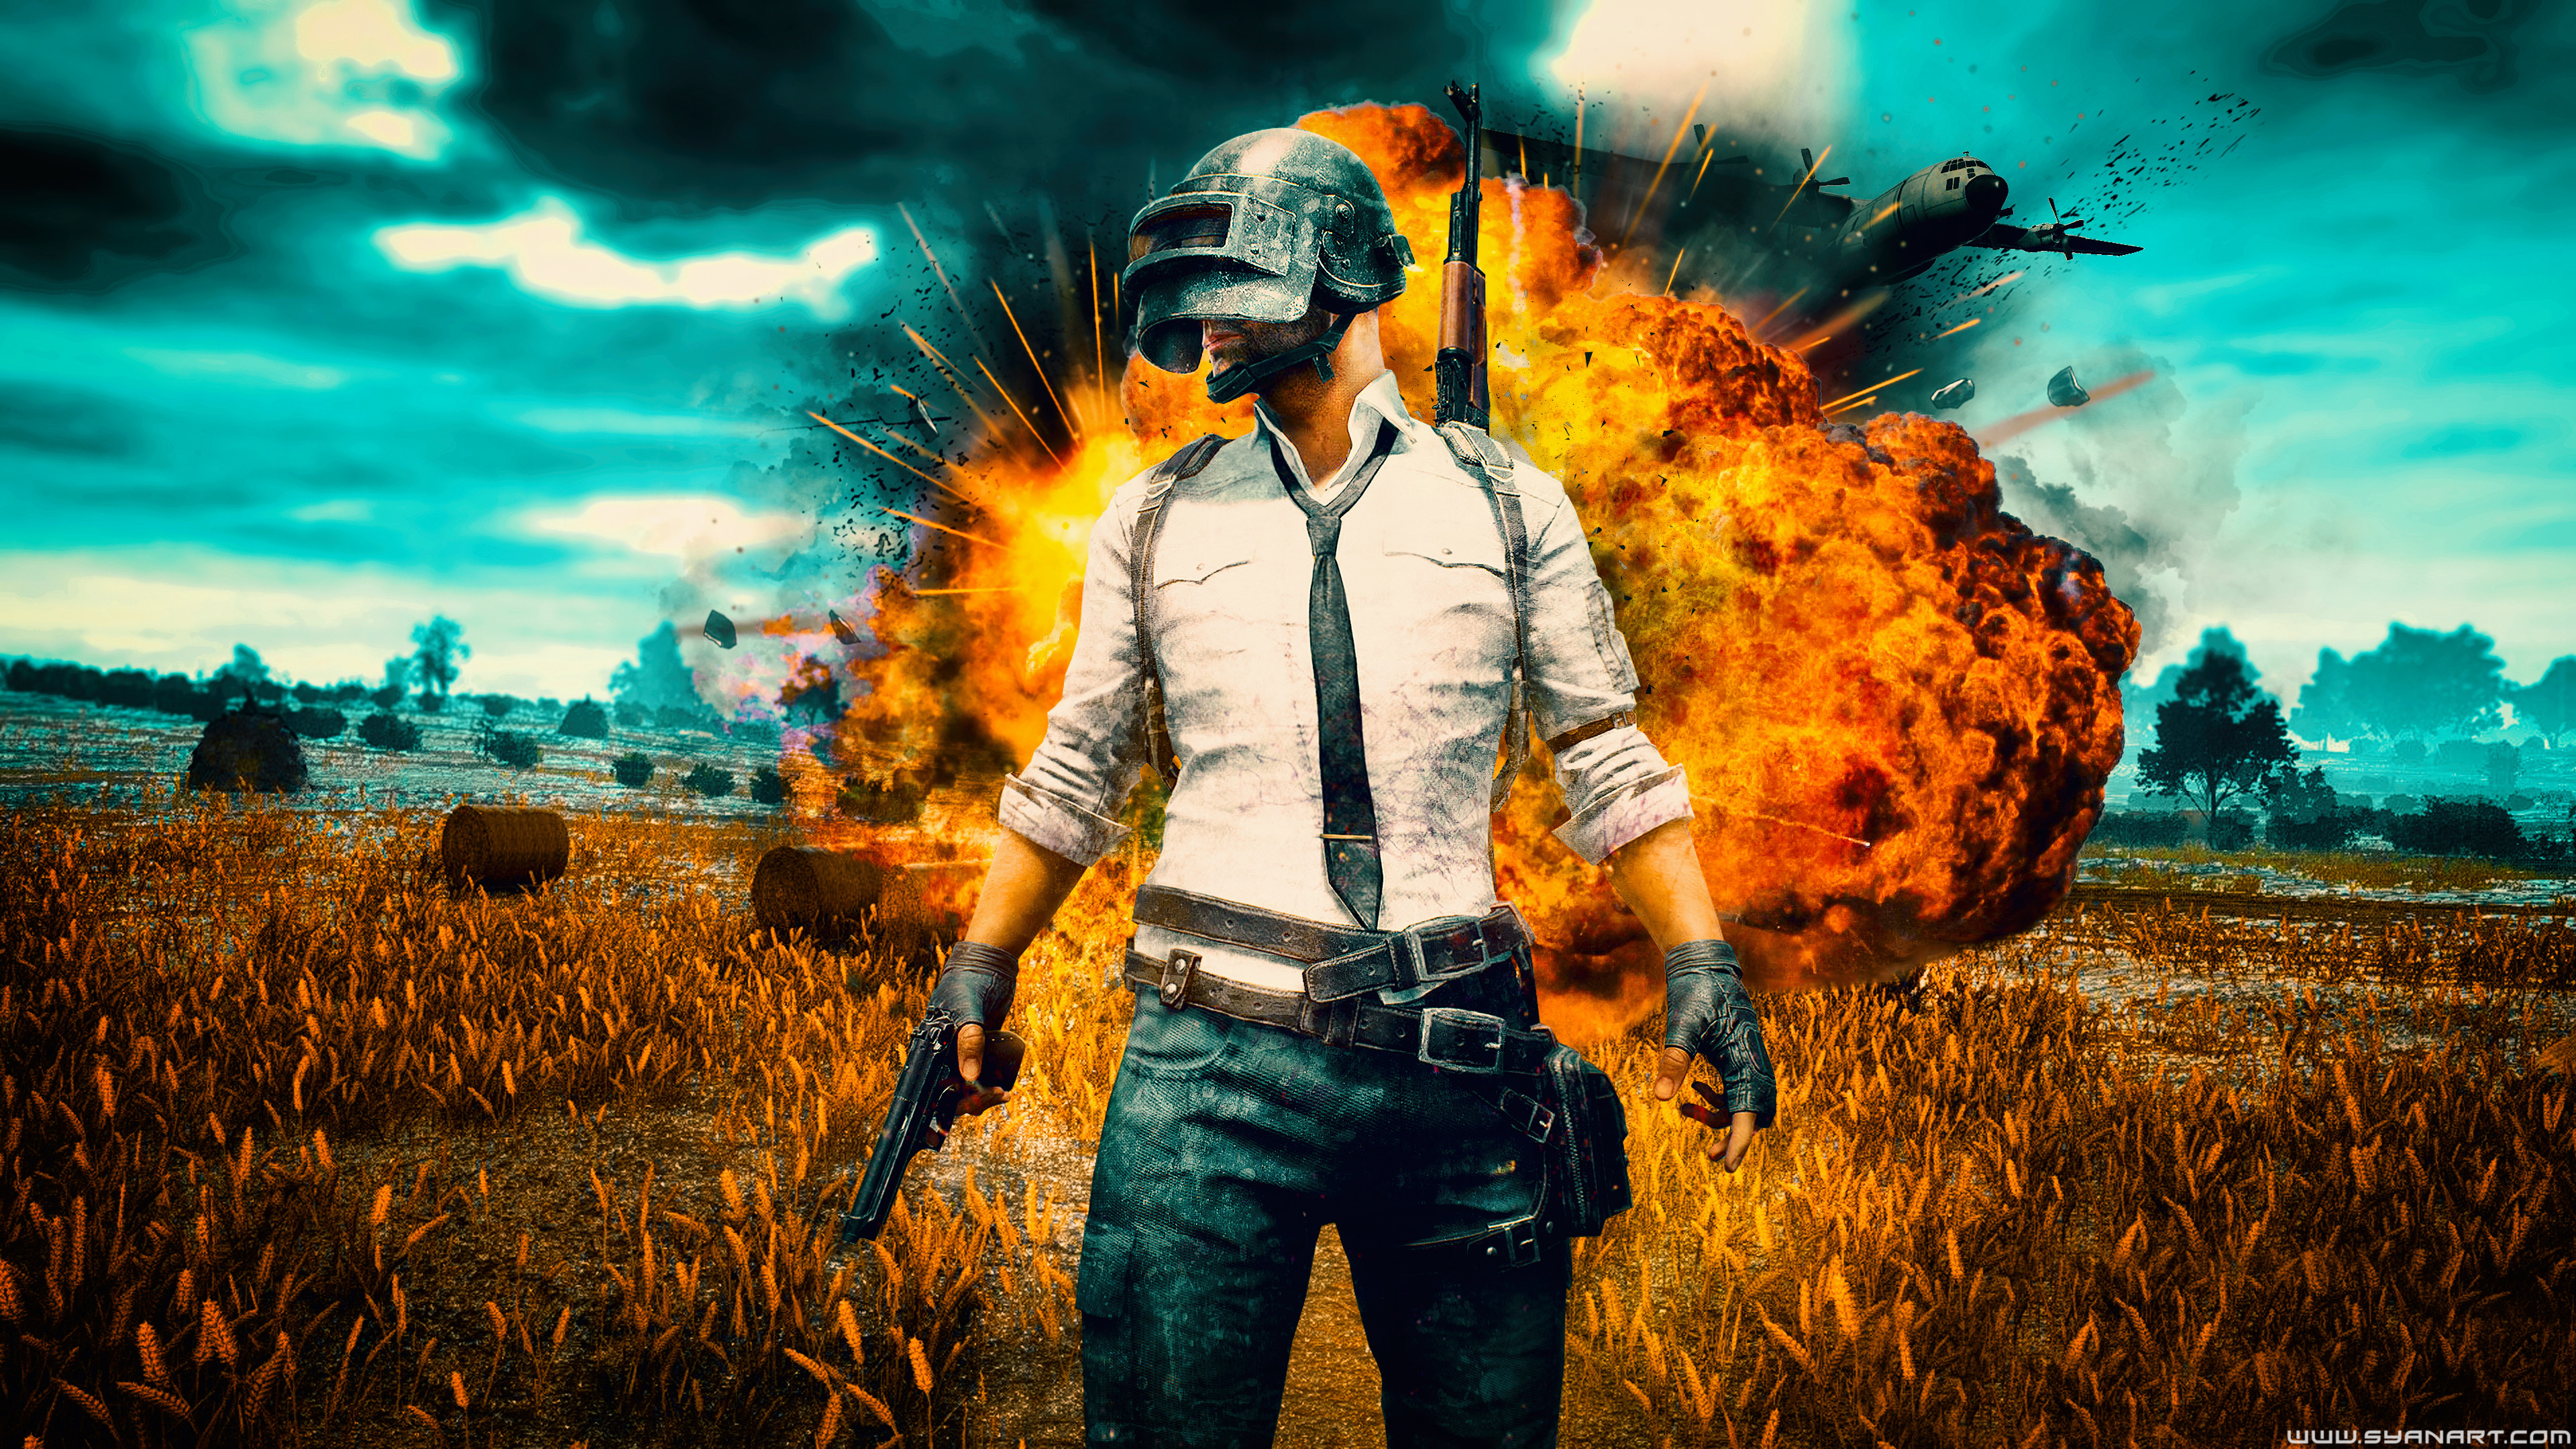 Pubg Full Hd Wallpaper Download For Pc: Pub Wallpaper (57+ Images